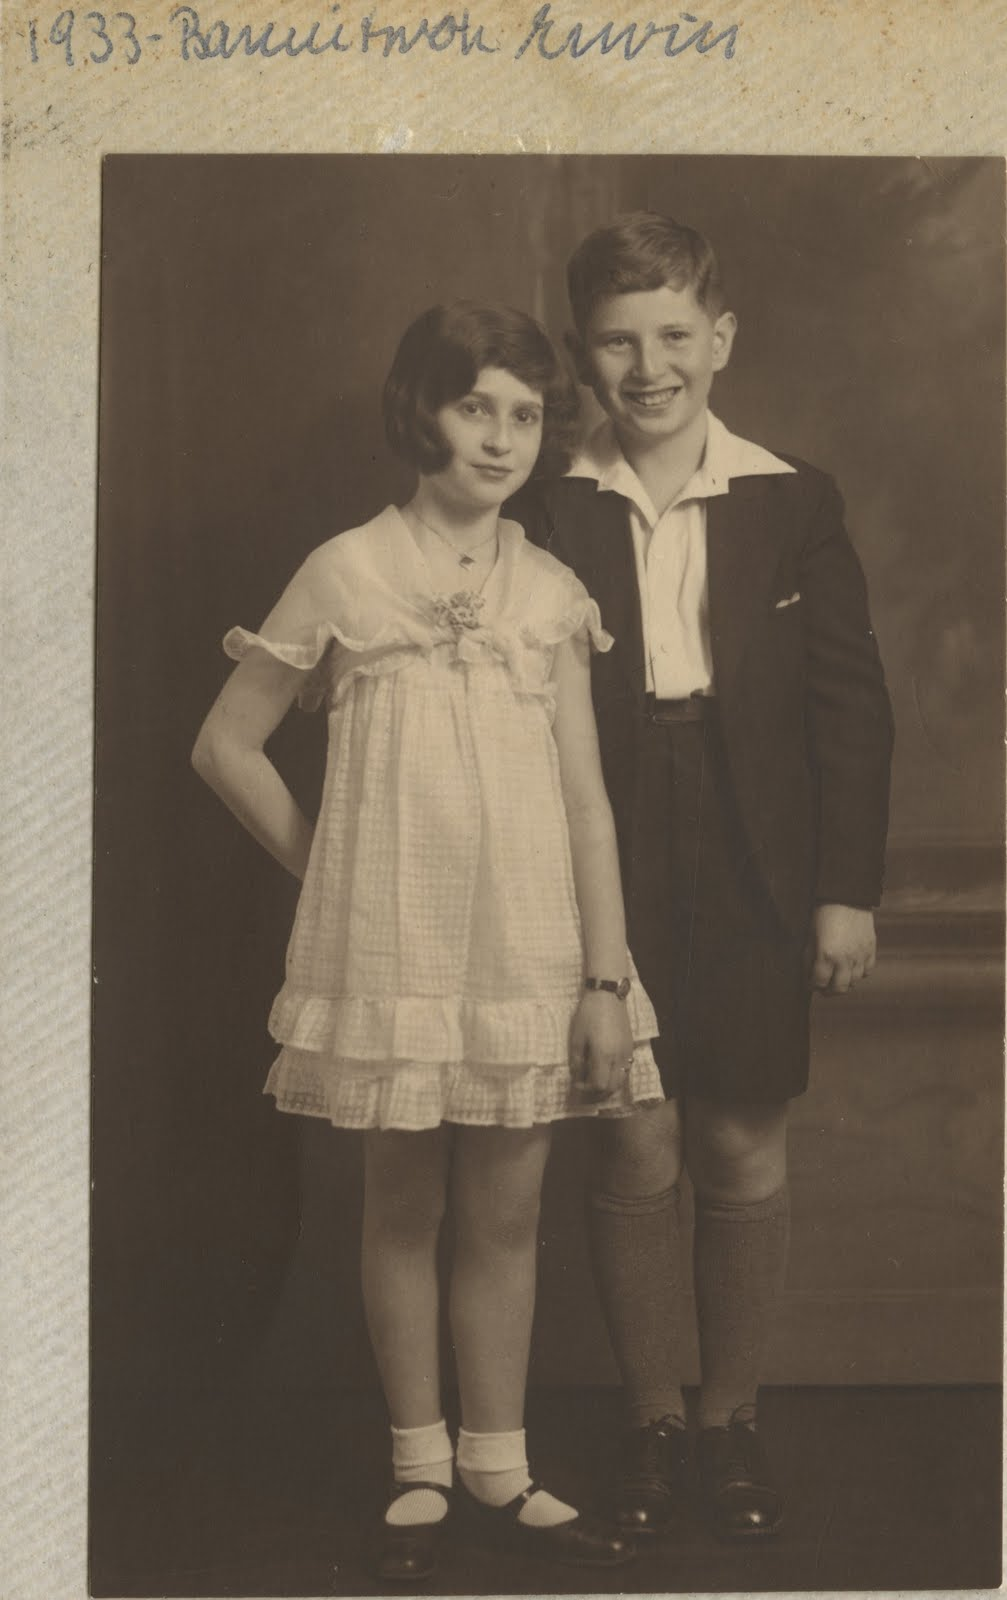 Gerda and Erwin Gumpel -- Erwin Gumpel's Bar Mitzvah -- 1933, Hamburg, Germany